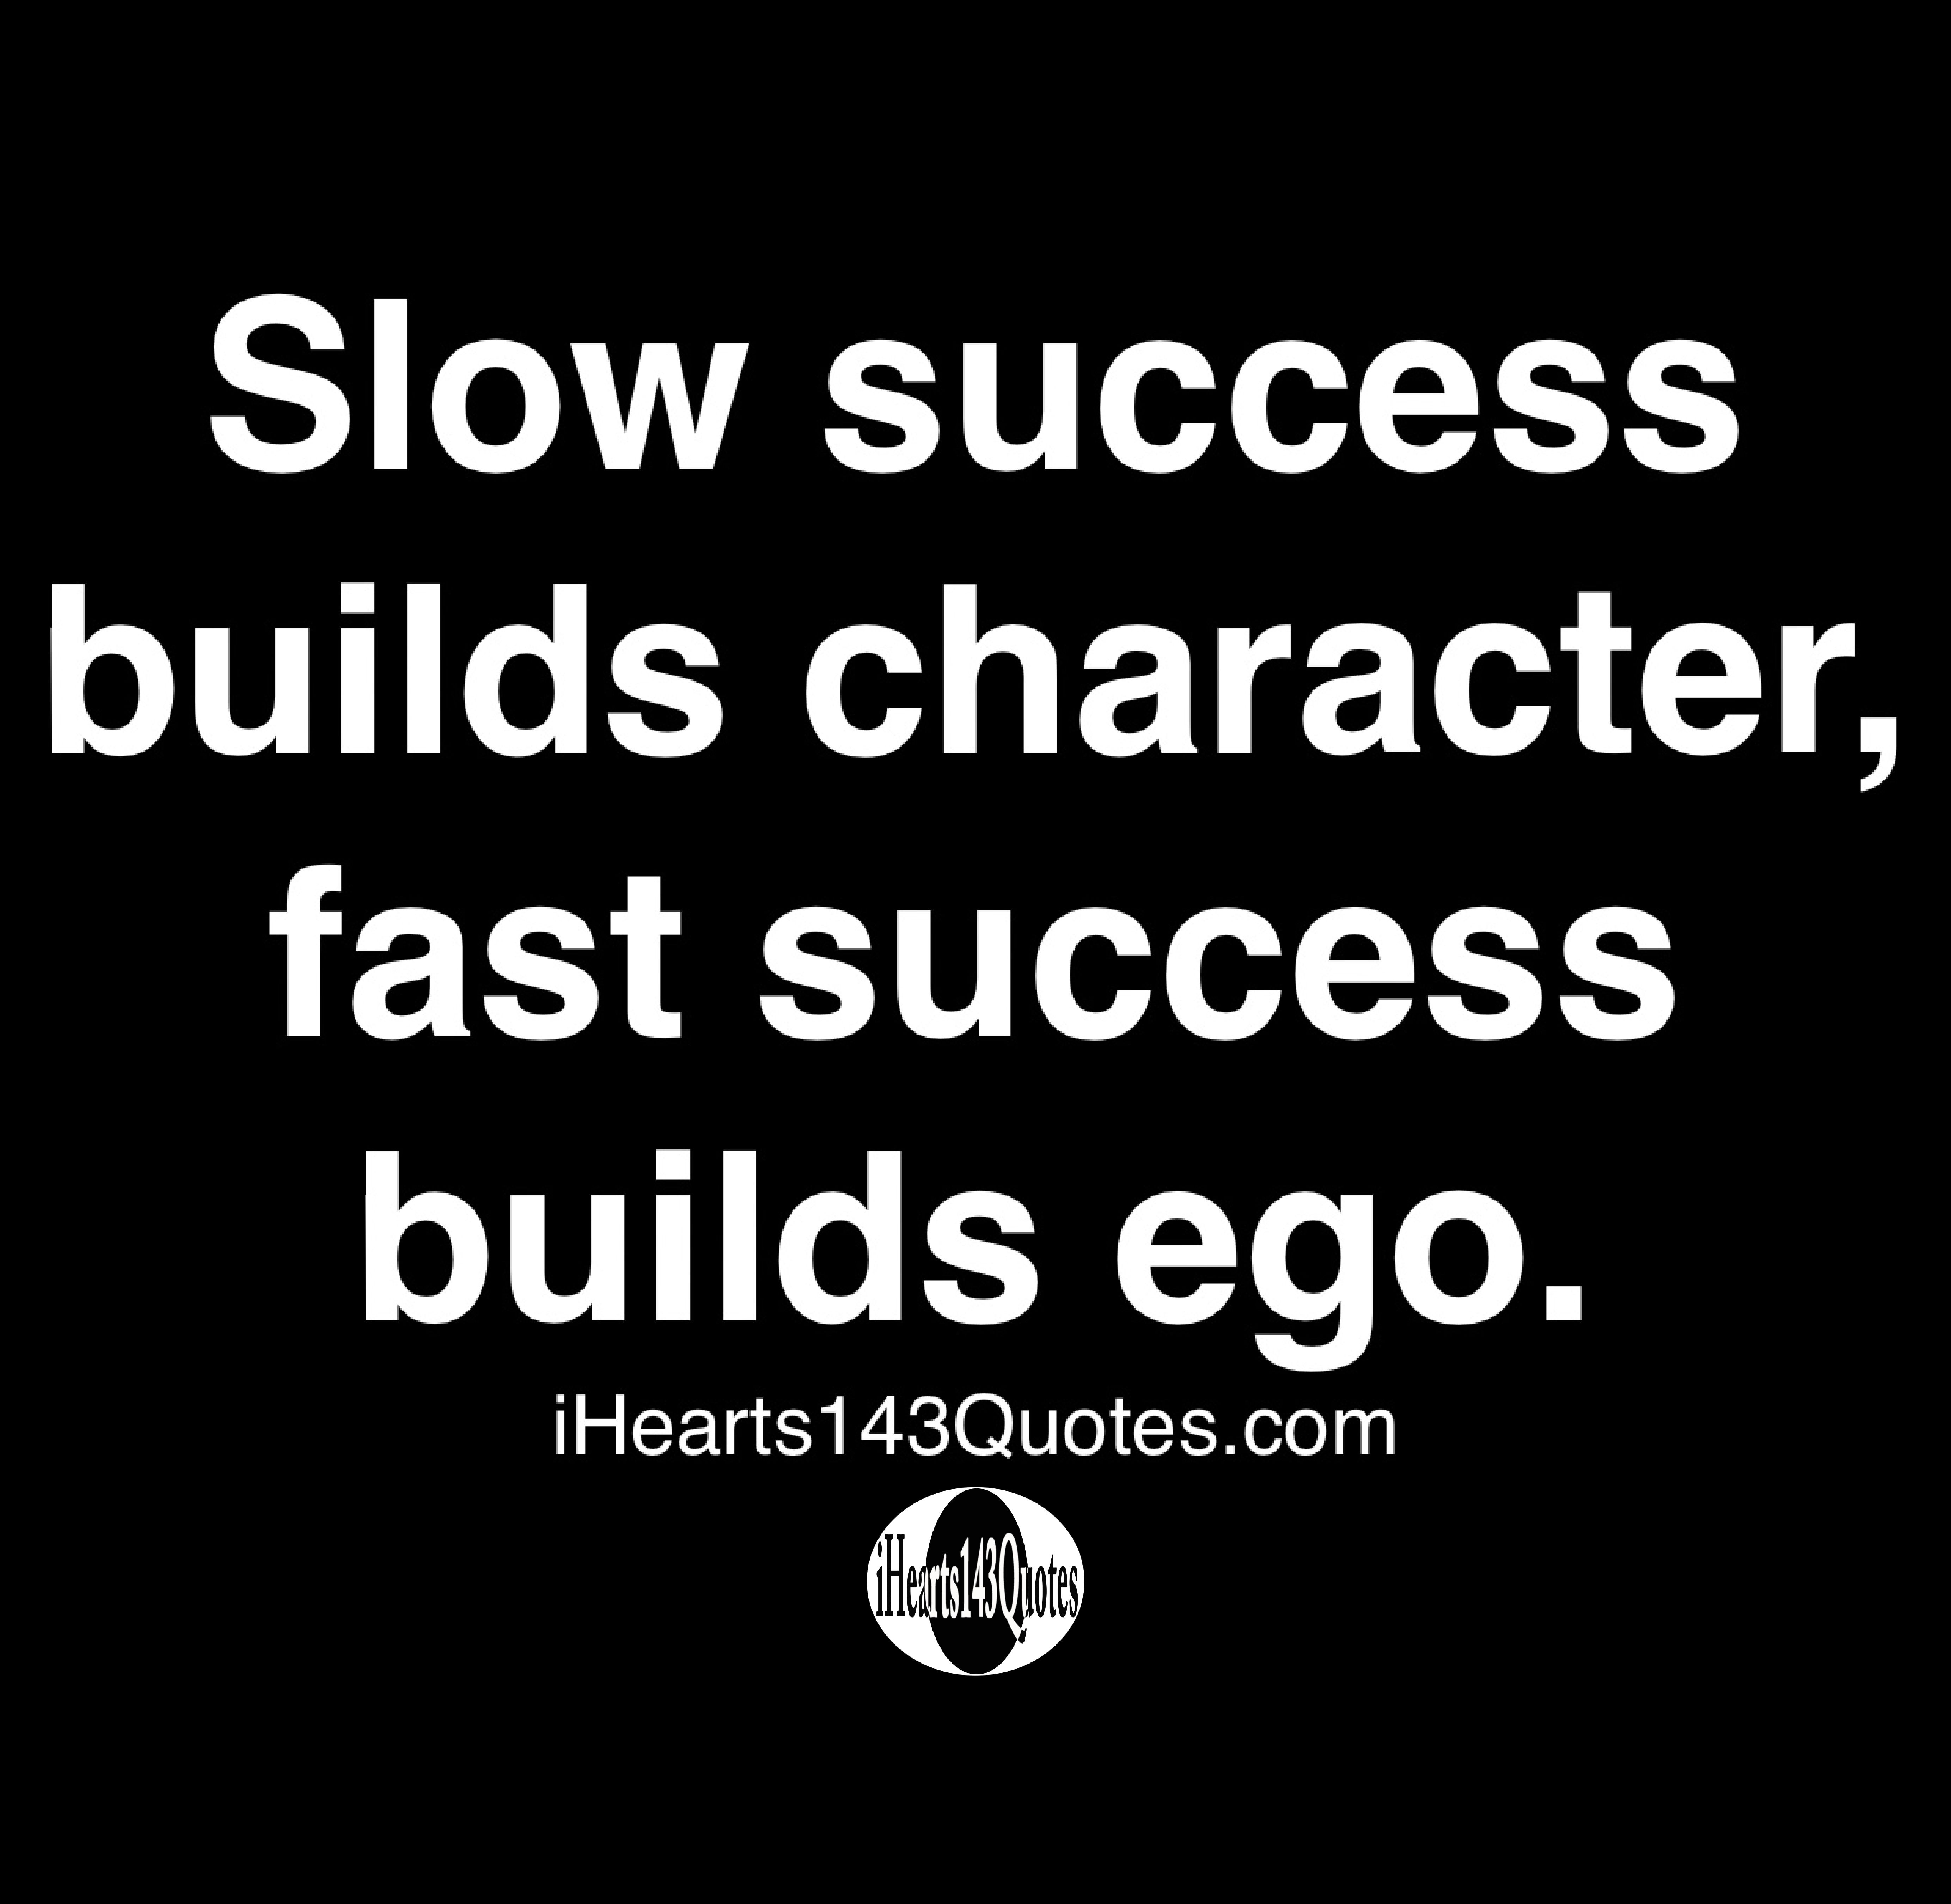 instagram quotes page iheartsquotes